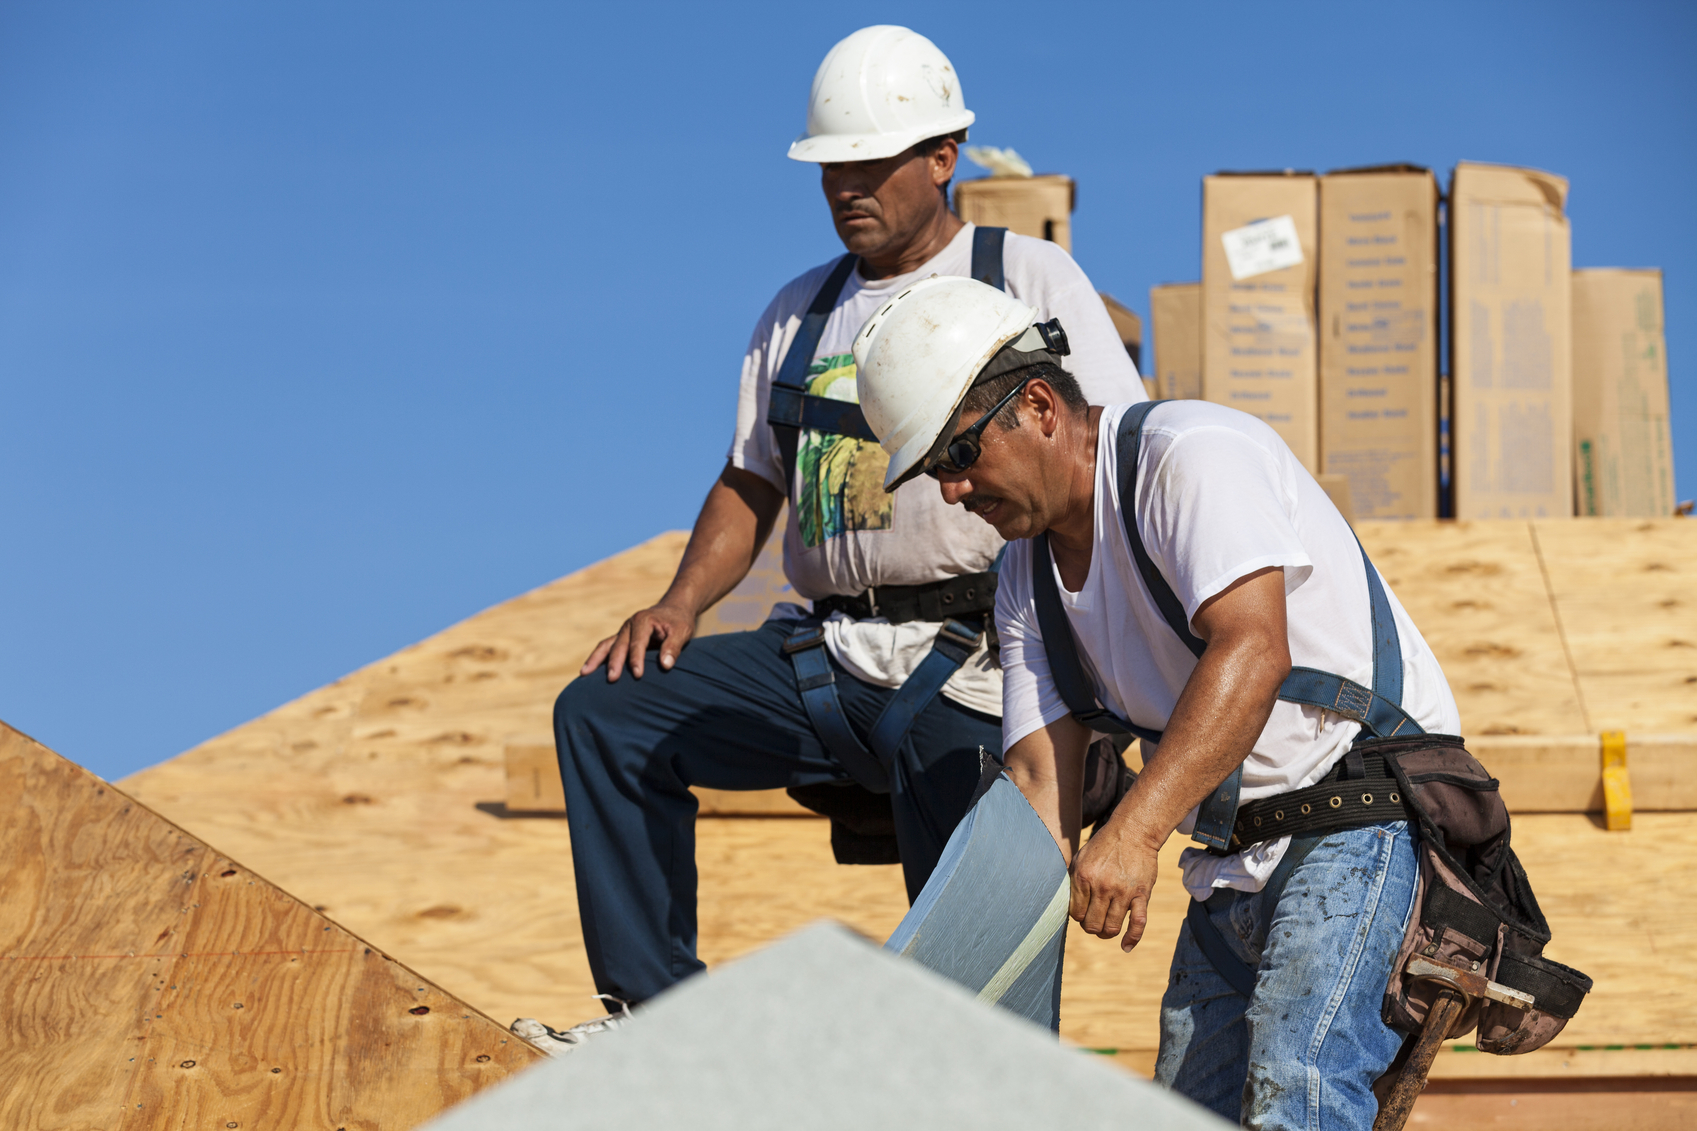 Home builders construction need these 3 tools in their toolbelt